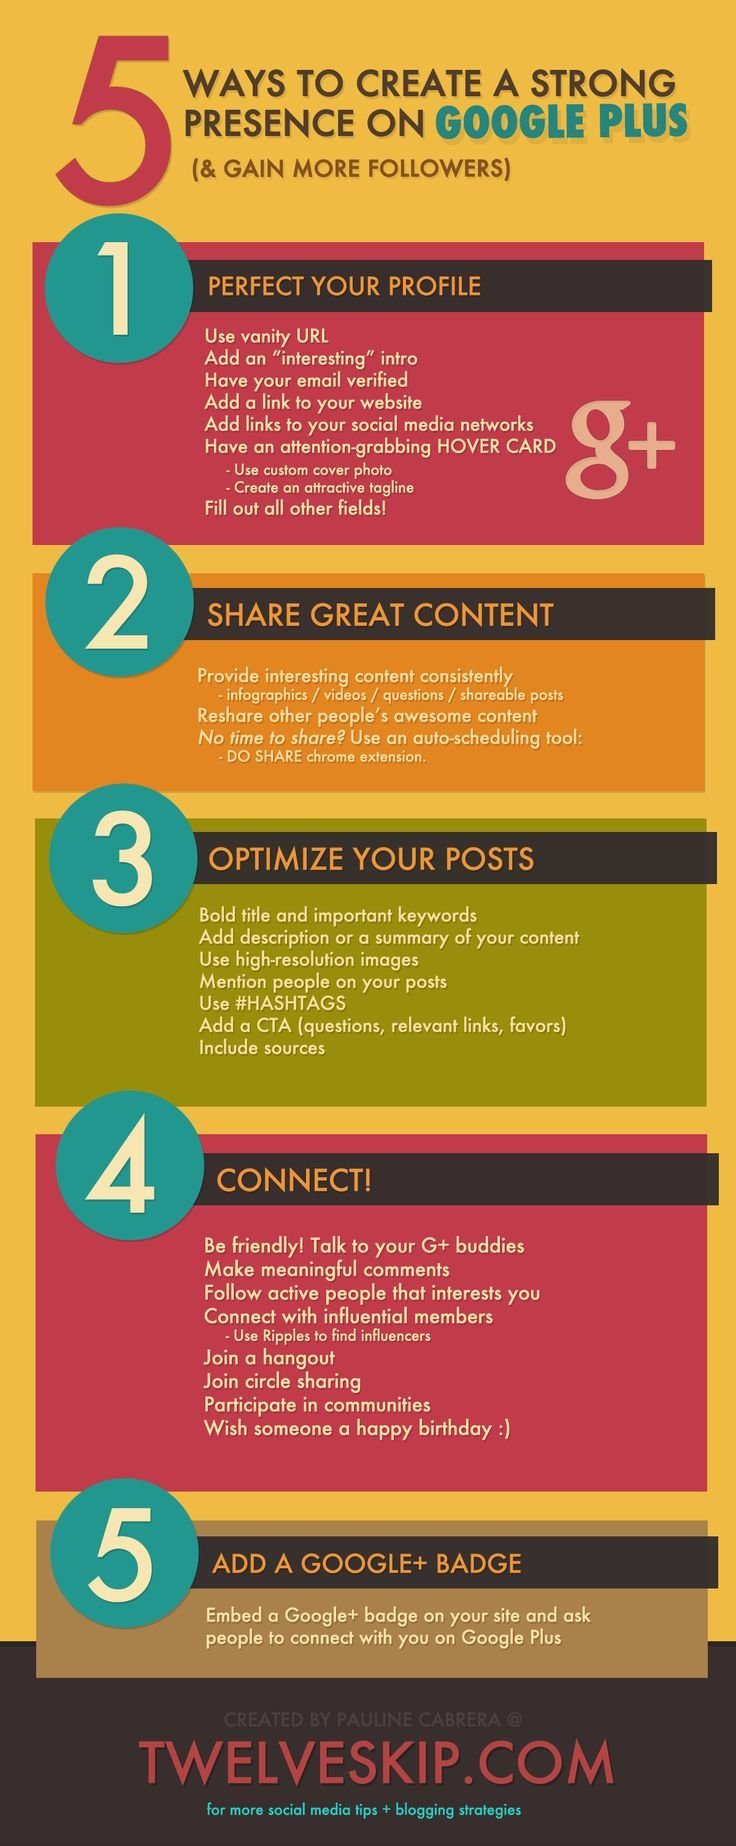 5 Ways to create strong presence on Google Plus #infographic